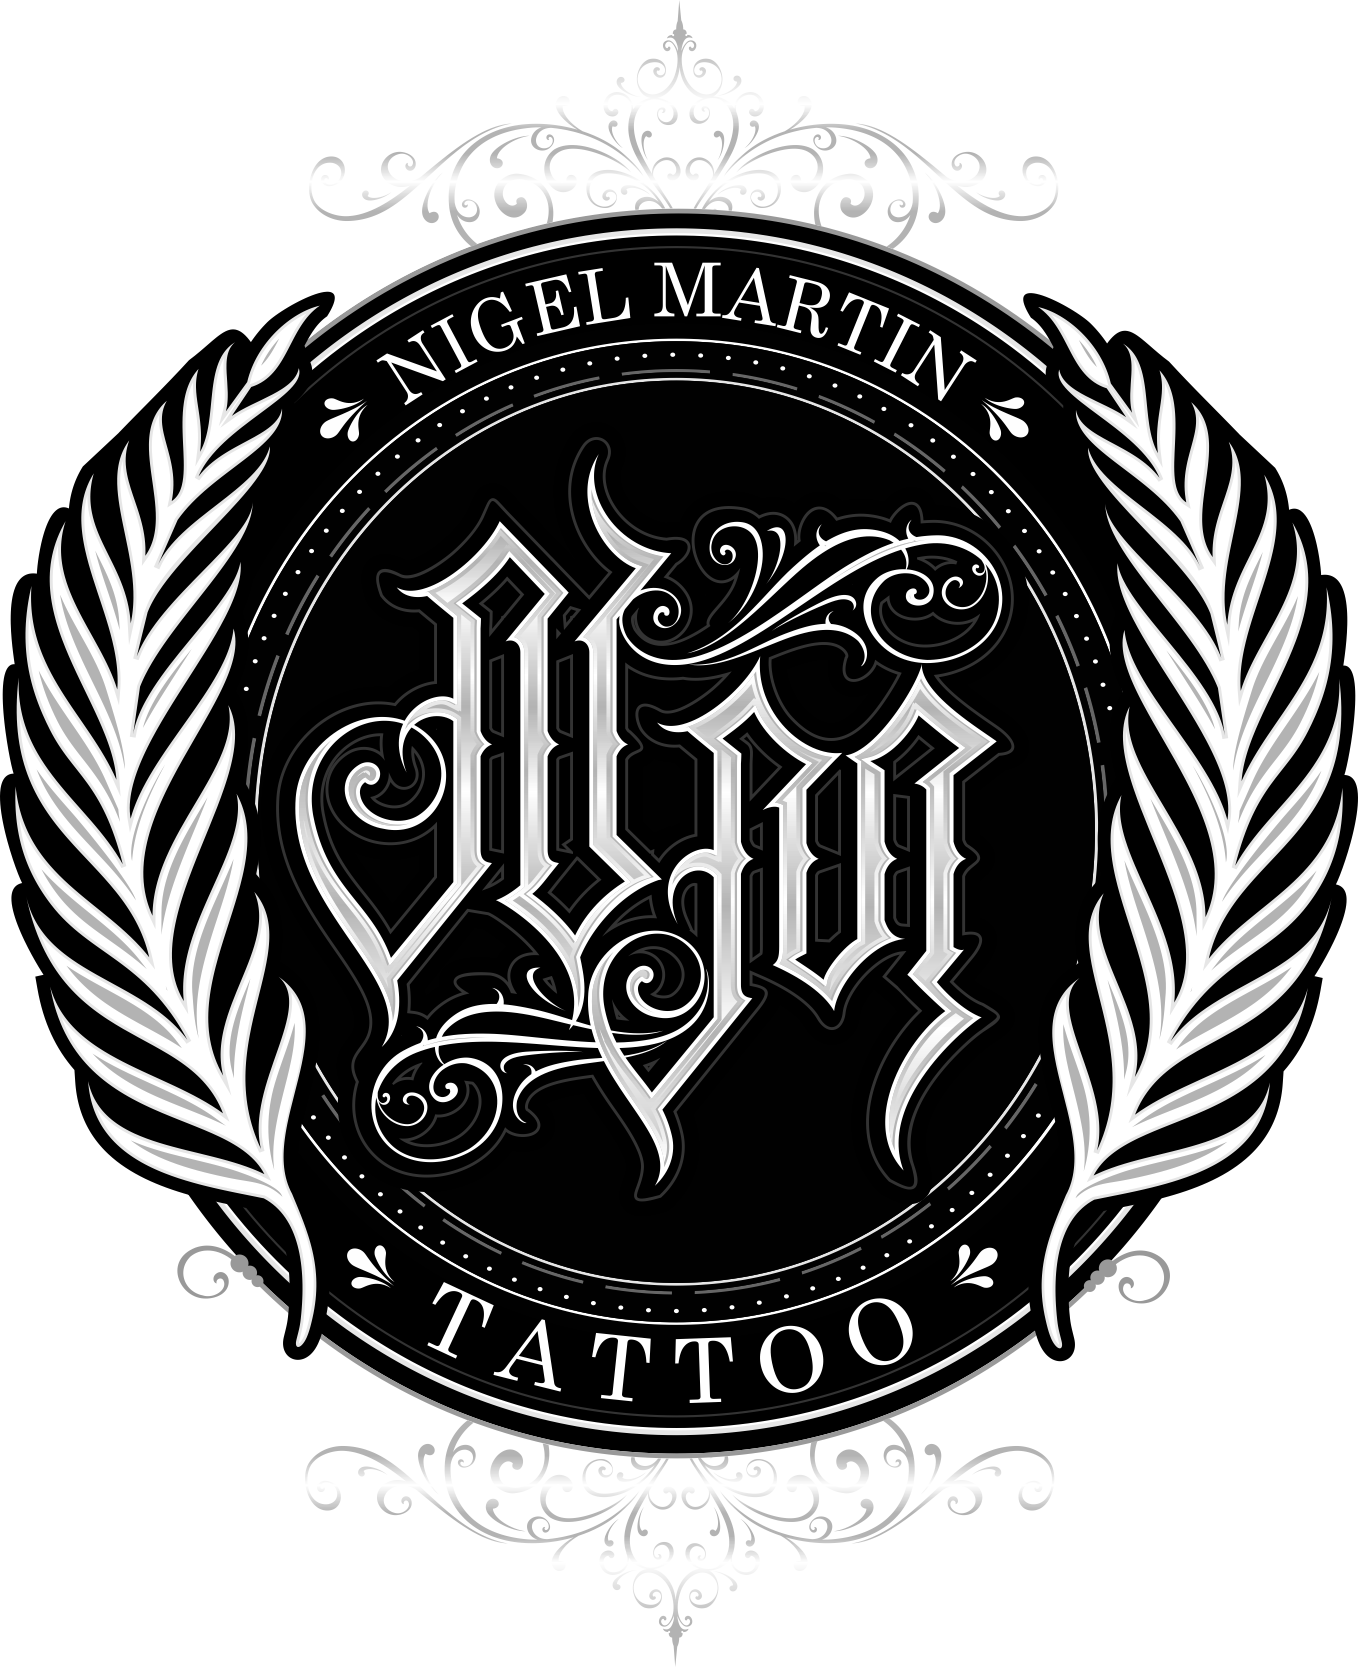 Nigel Martin Tattoos is a Official Stockist of Aussie Inked Tattoo Care